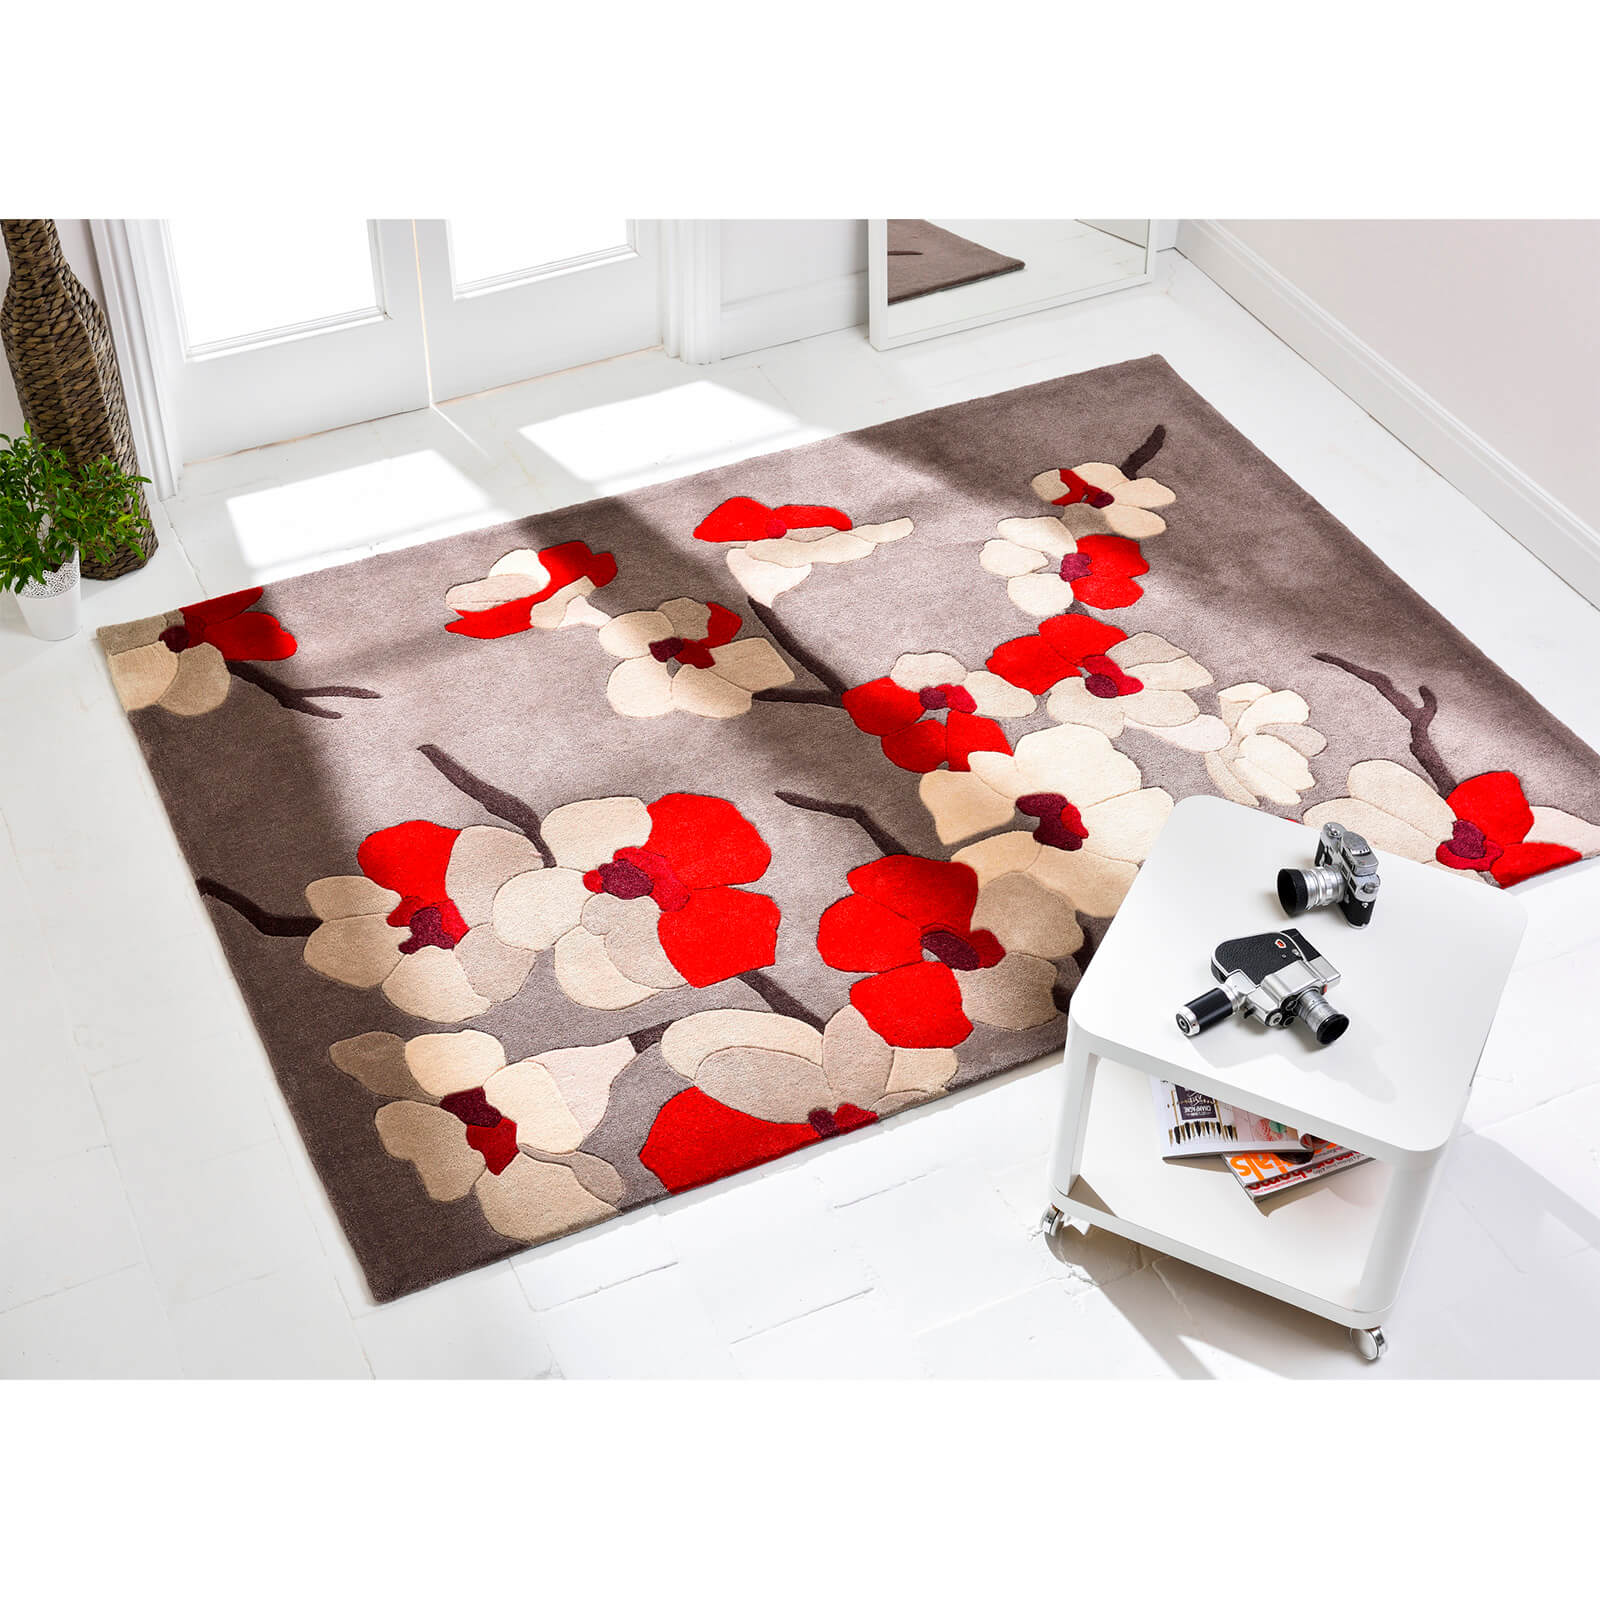 Flair Infinite Blossom Rug - Red